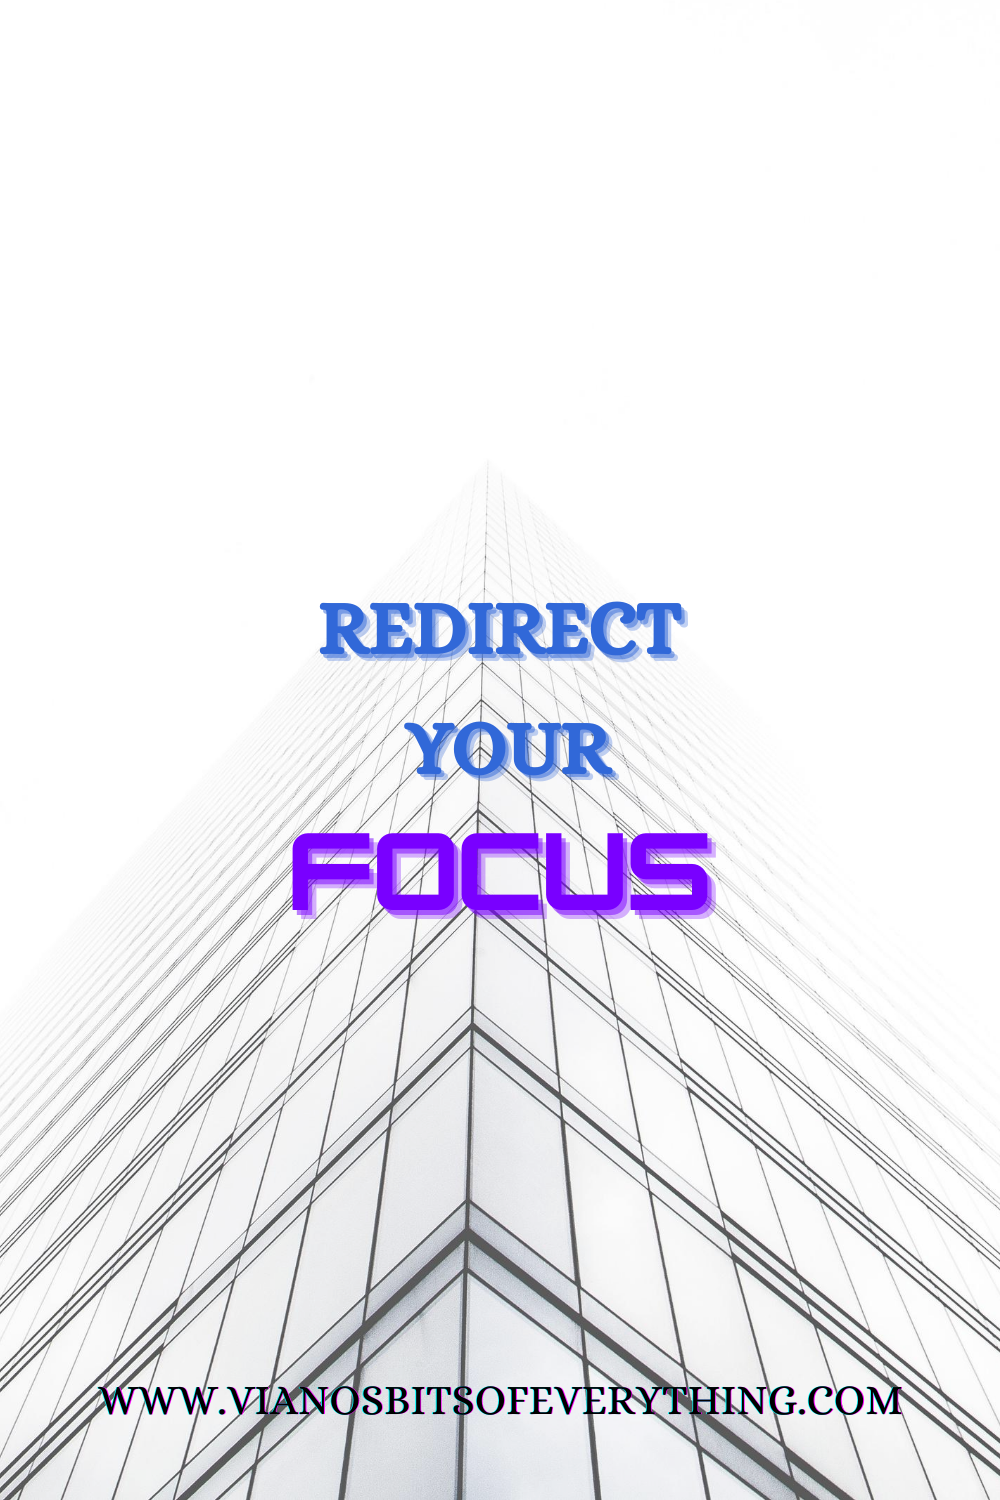 Redirect Your Focus!